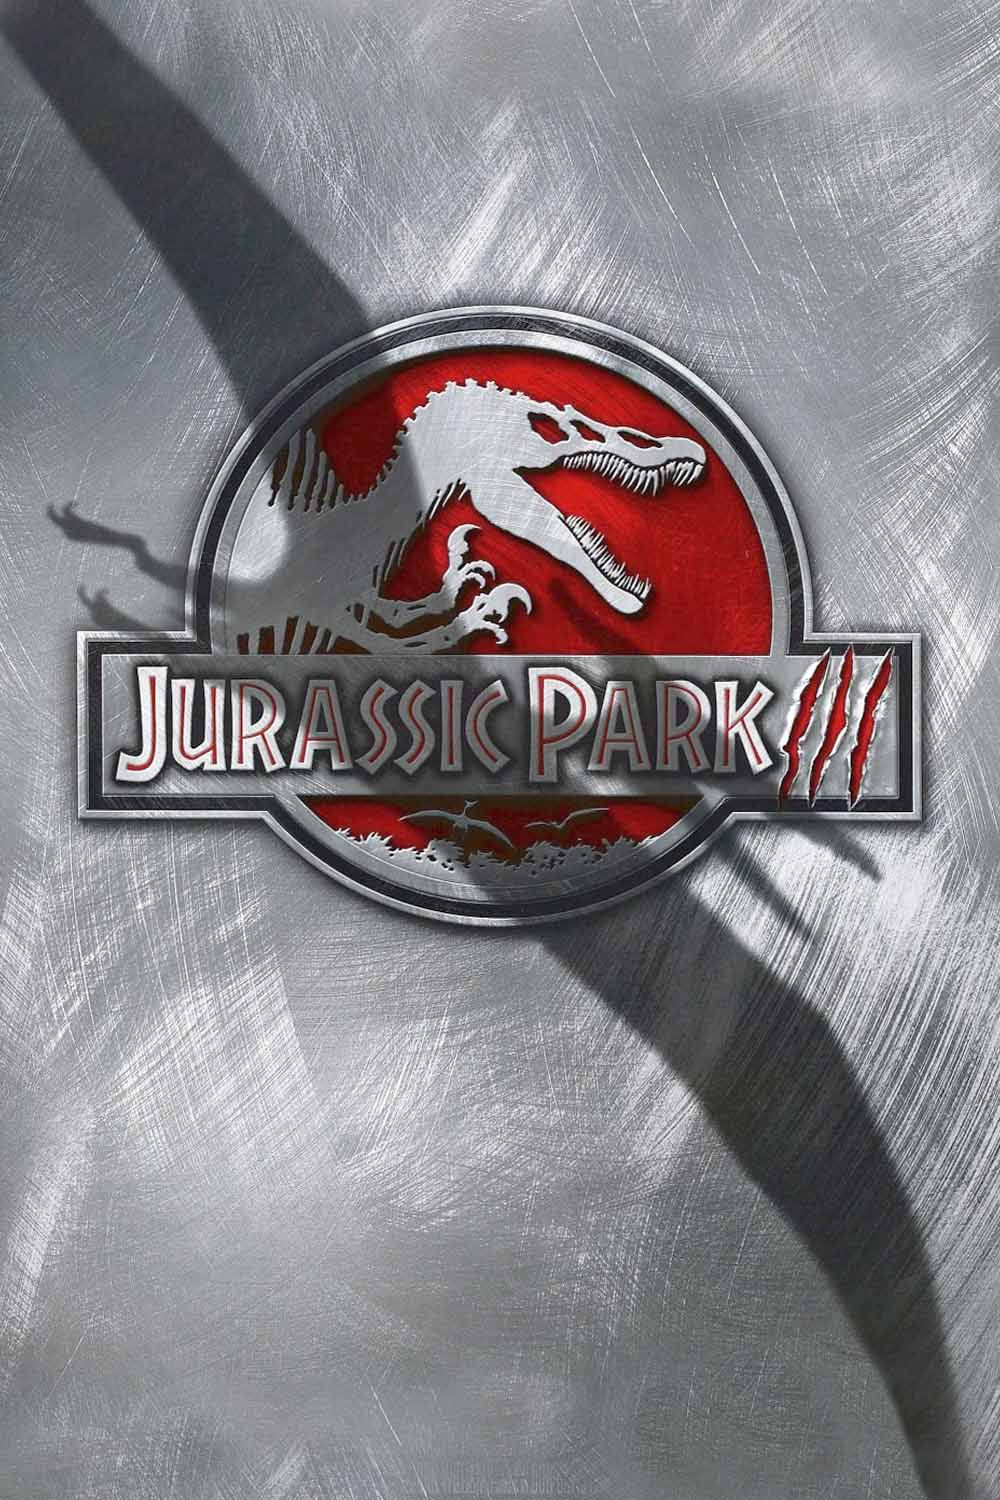 """a review of jurassic park Unfortunately, these thoughts are perverted by the movie's unceasing barrage of evolutionist propaganda, including casual references to man and dinosaurs being separated by 65 million years, and other theories hopelessly unsubstantiated yet dressed as undeniable scientific fact in summary, one of """" jurassic park's."""